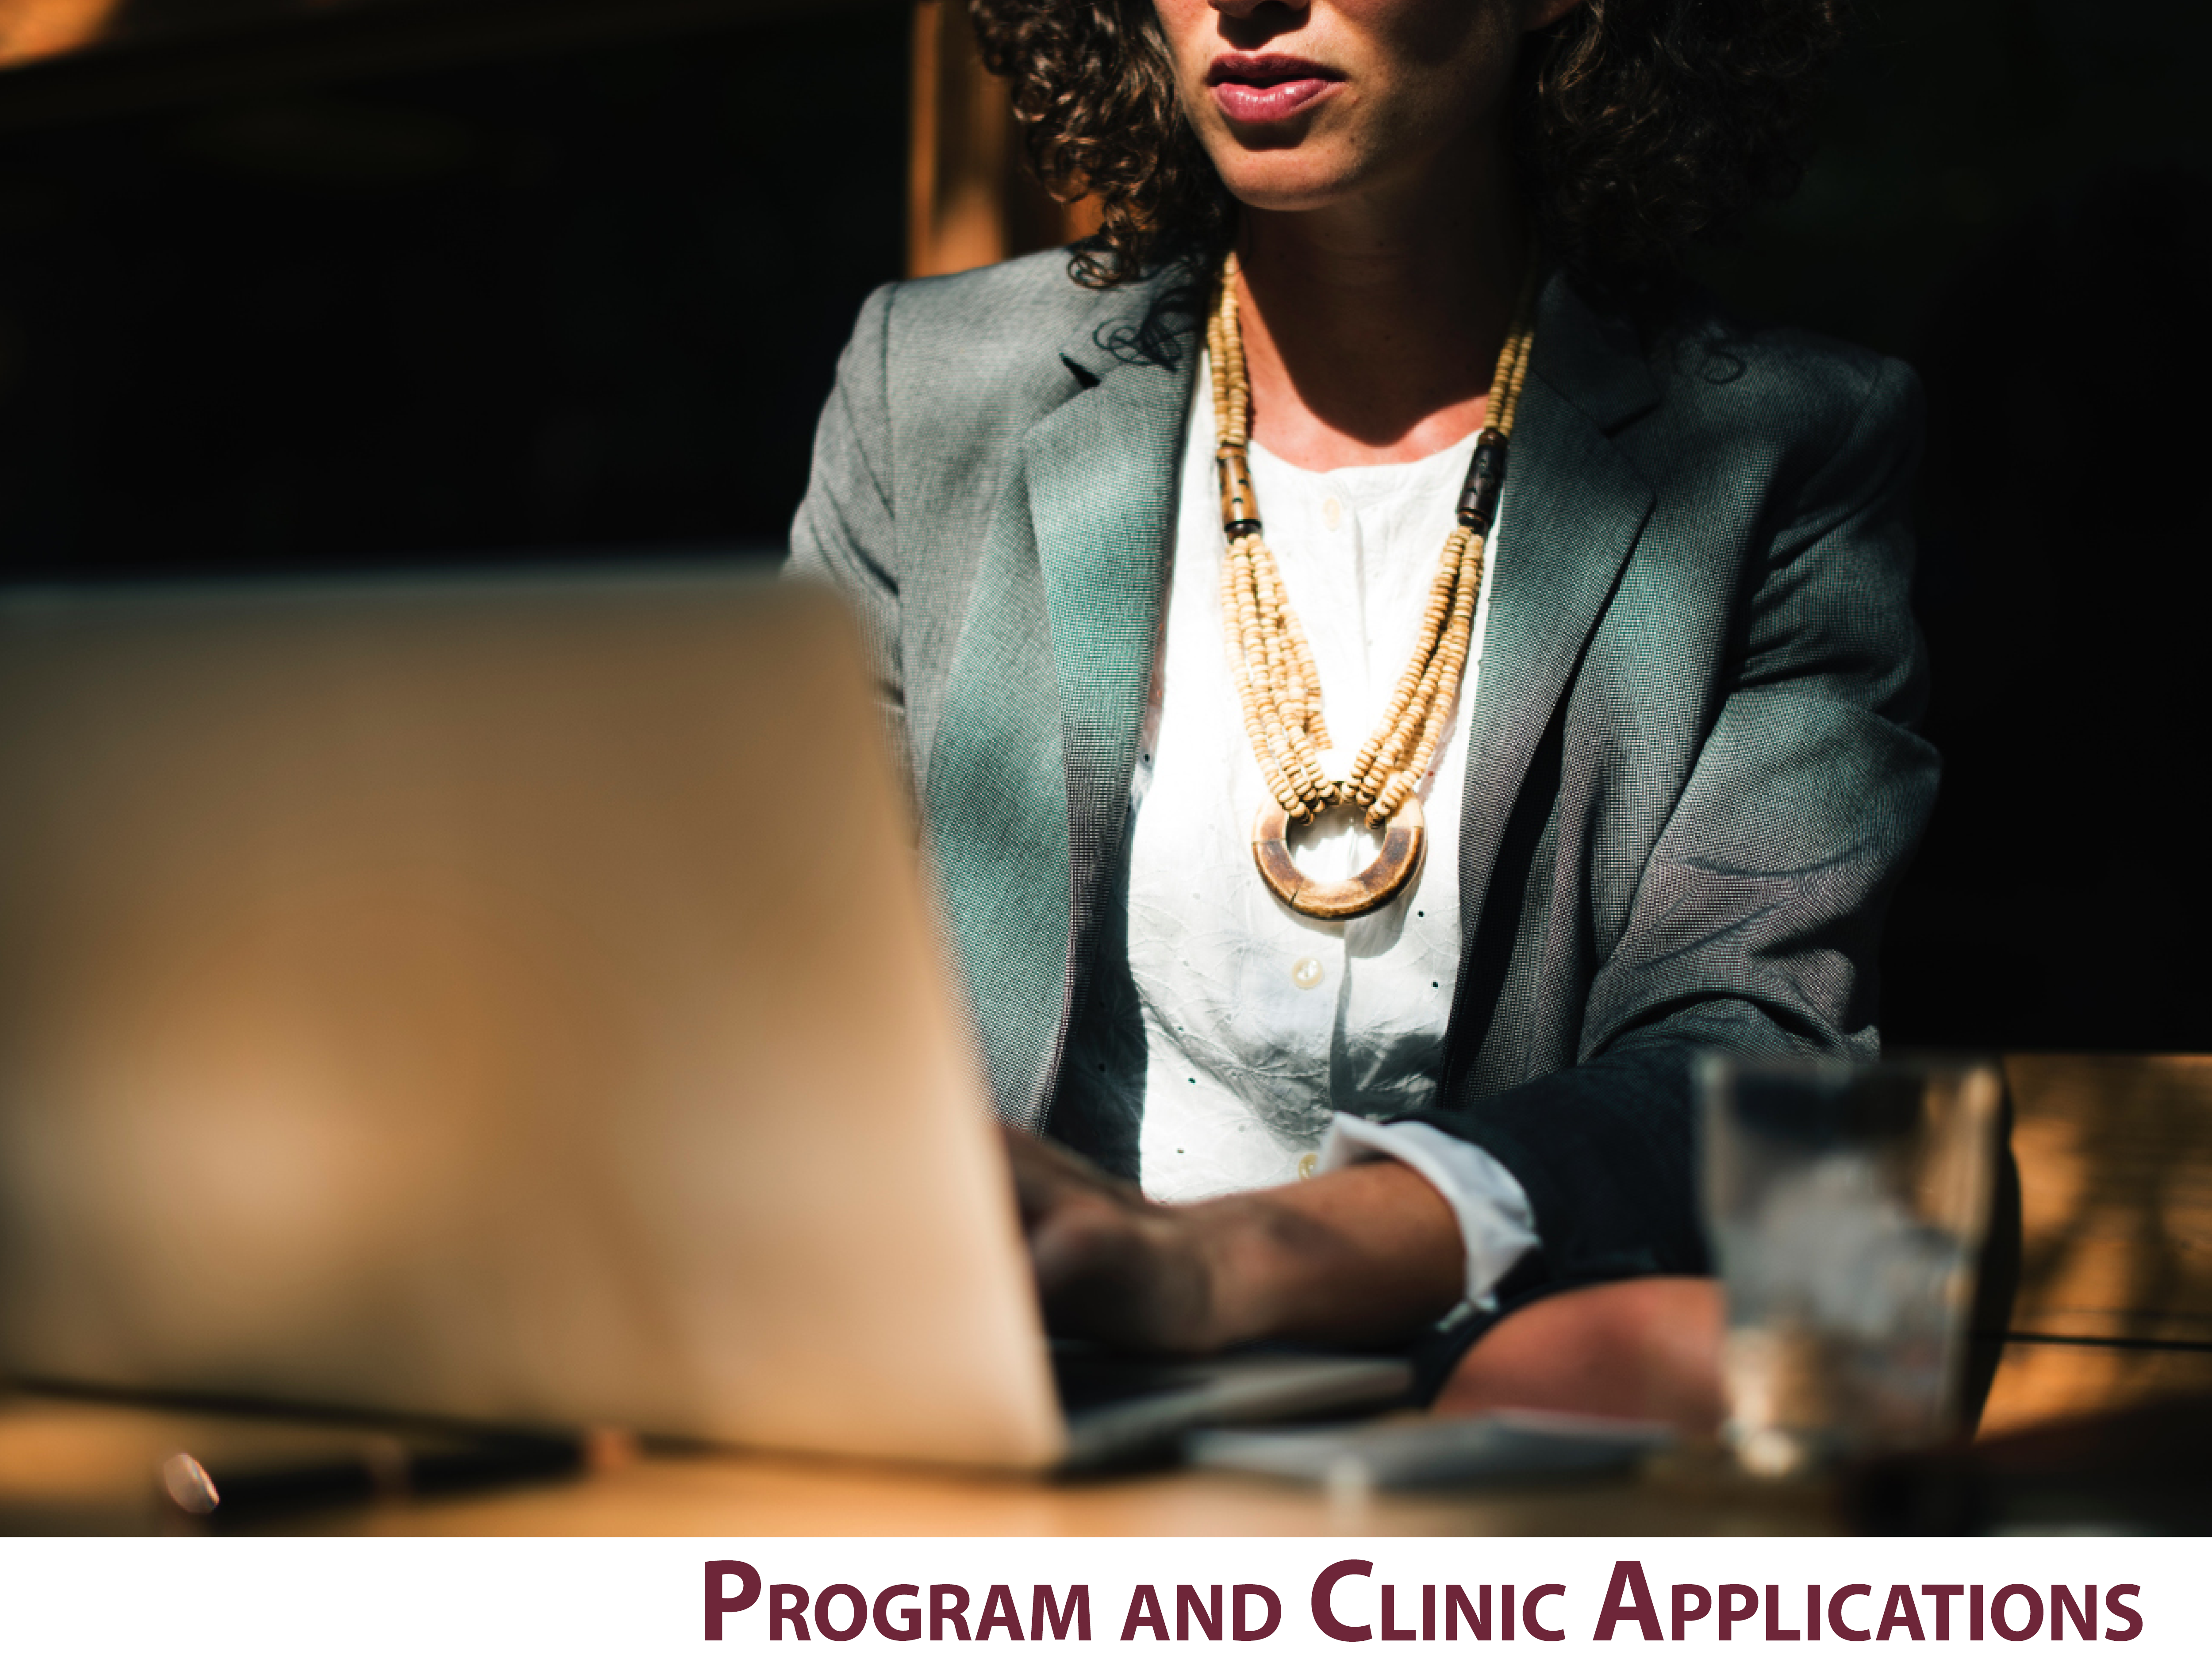 Program and Clinic Applications